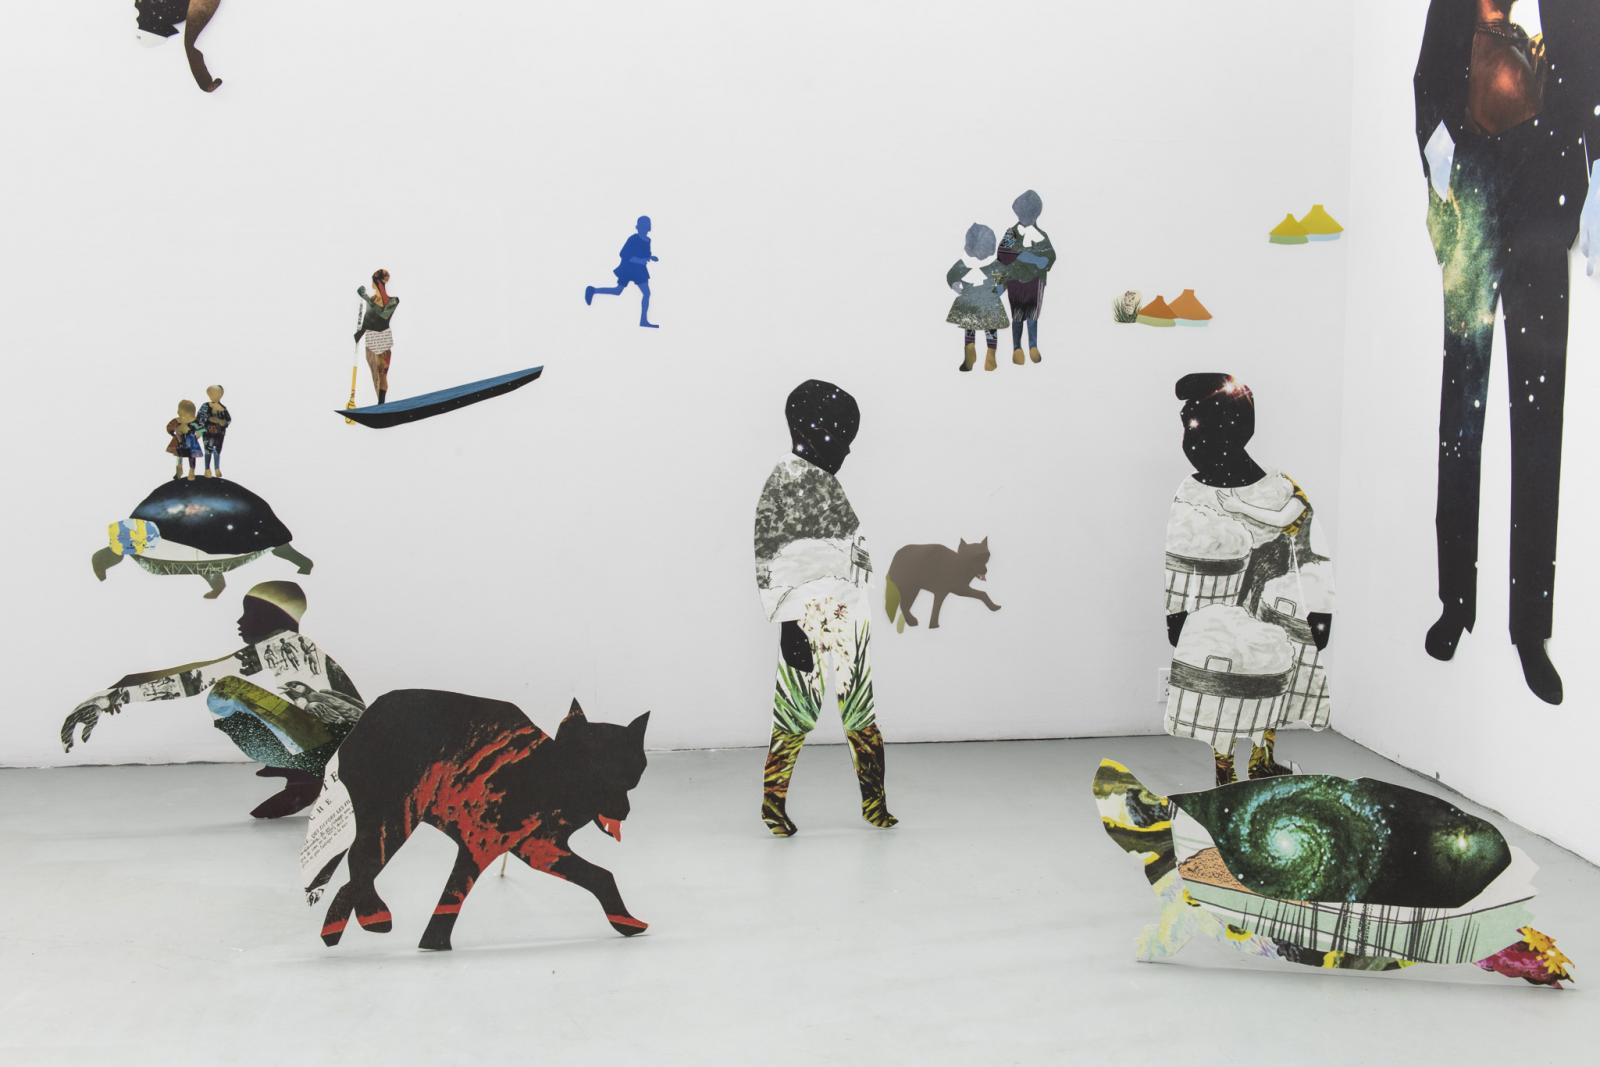 Installation of collaged work on the wall and extending into the space as 2D sculptures, featuring human and animal figures.